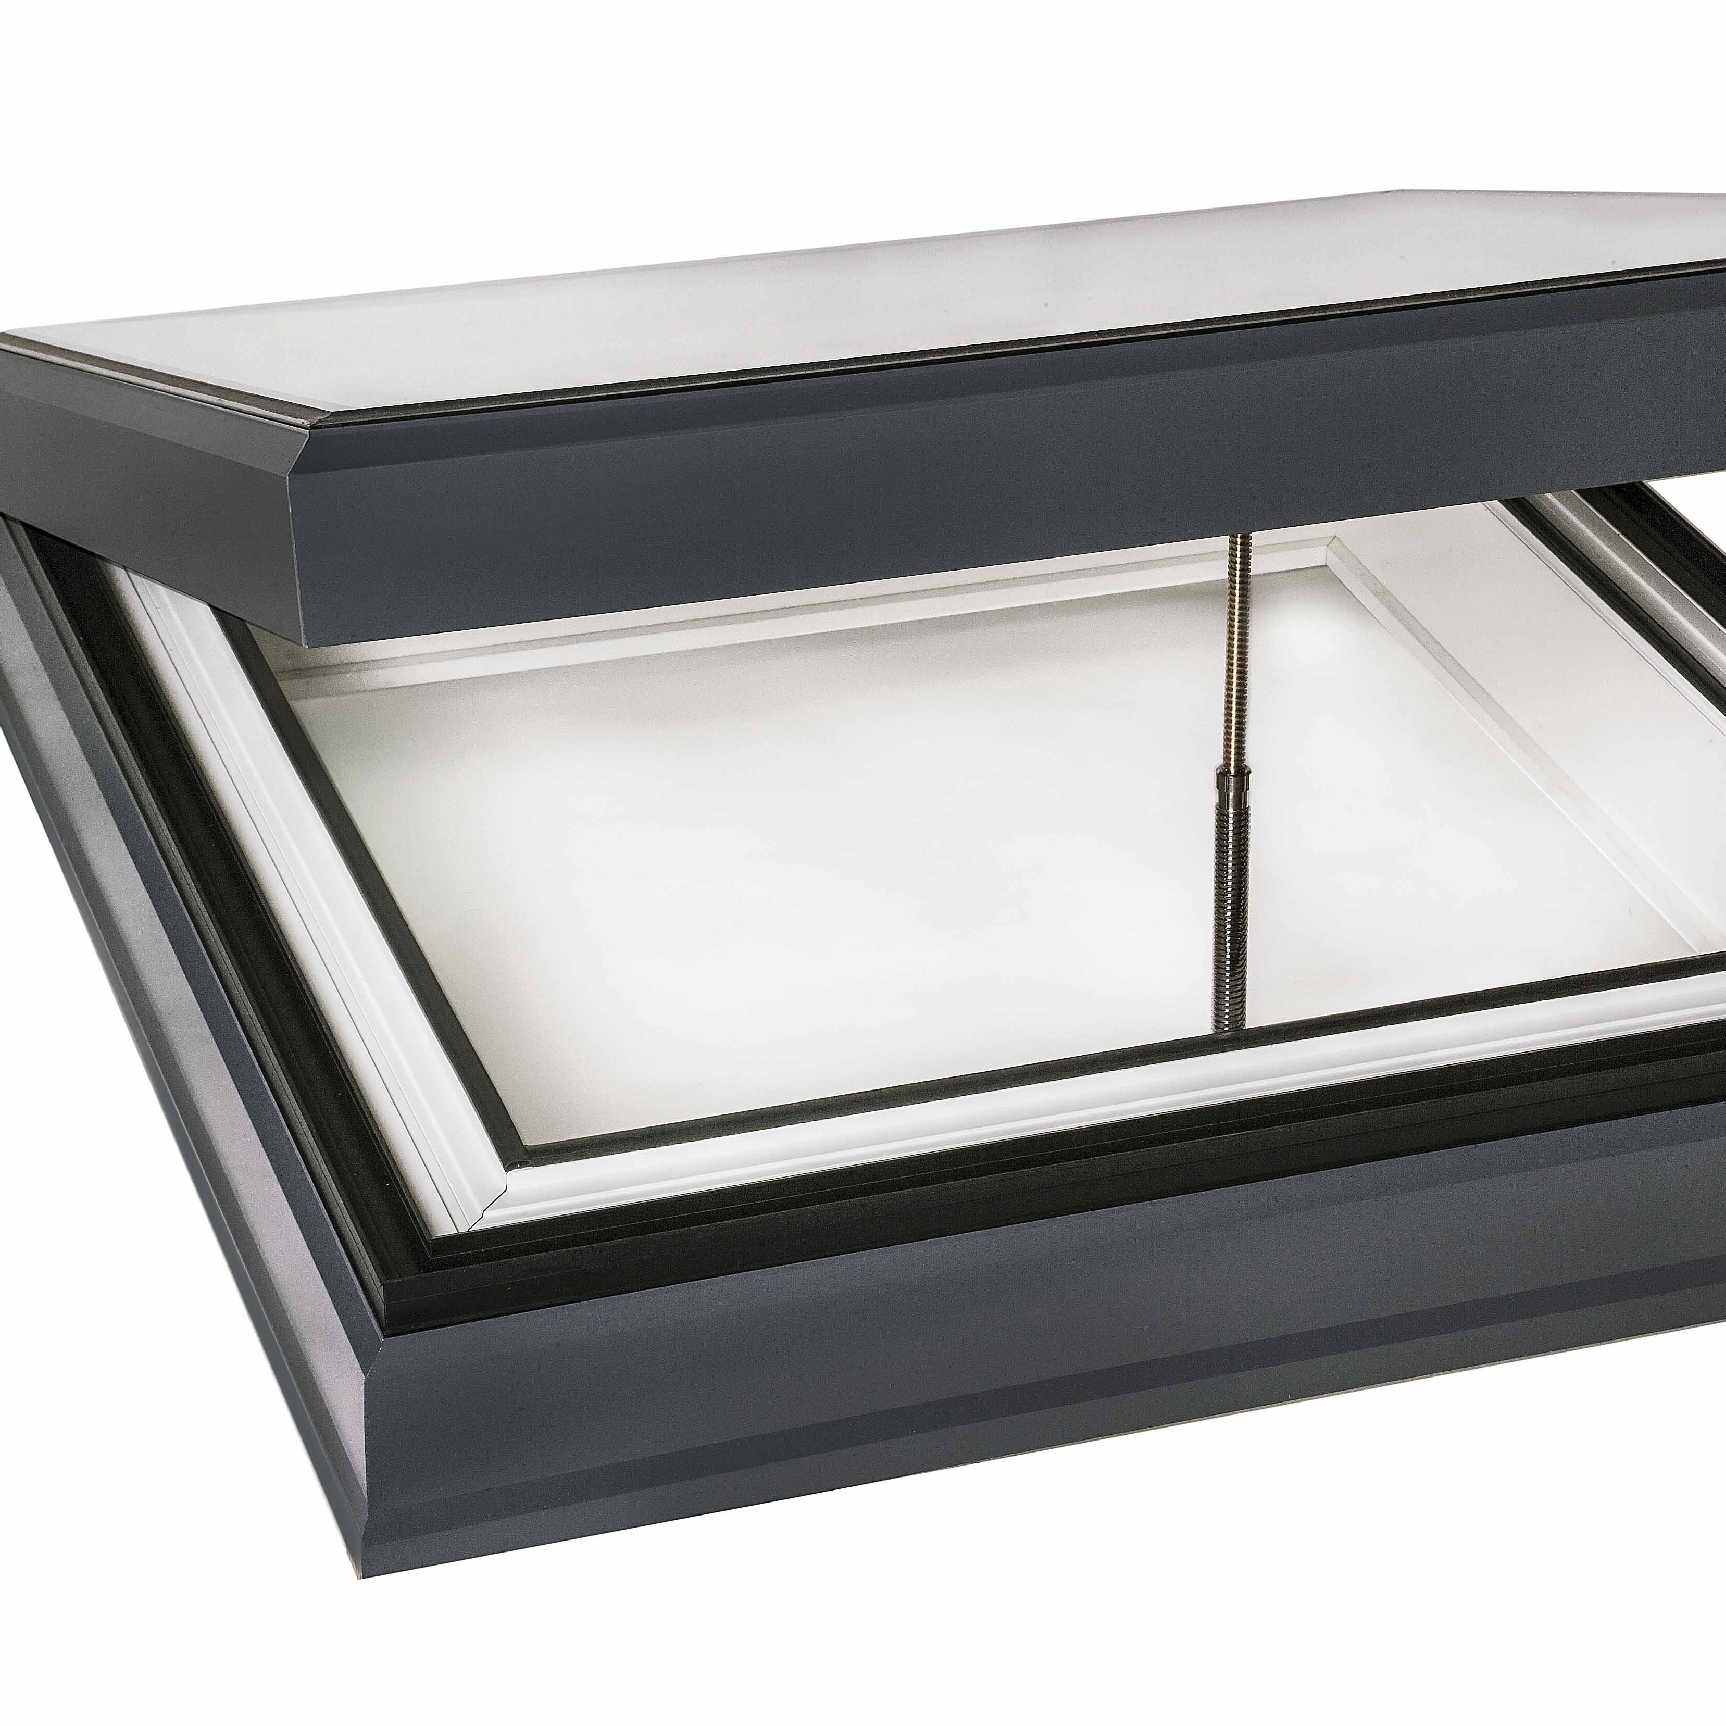 Great deals on EcoGard Flat Roof light, Triple Glazed, Electric Opening, 1,000mm x 1,500mm